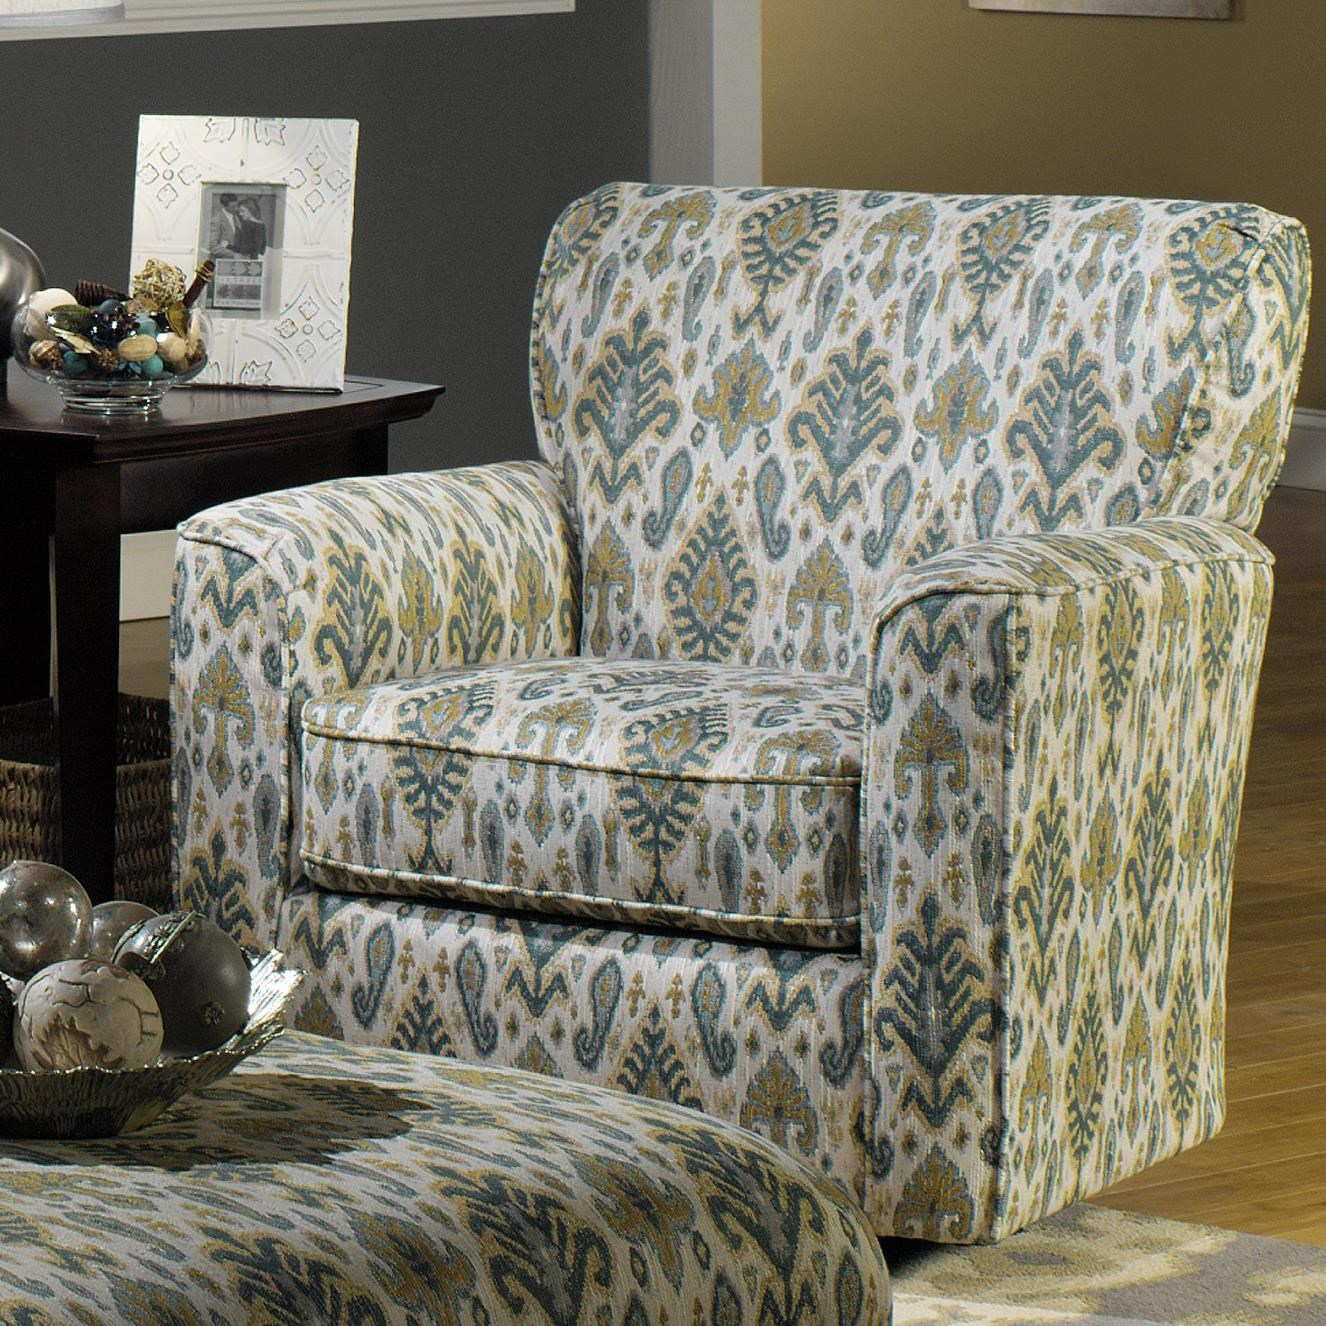 Upholstered Swivel Chairs Accent Chairs Contemporary Upholstered Swivel Chair With Flared Arms And Welt Cord Trim By Craftmaster At Becker Furniture World